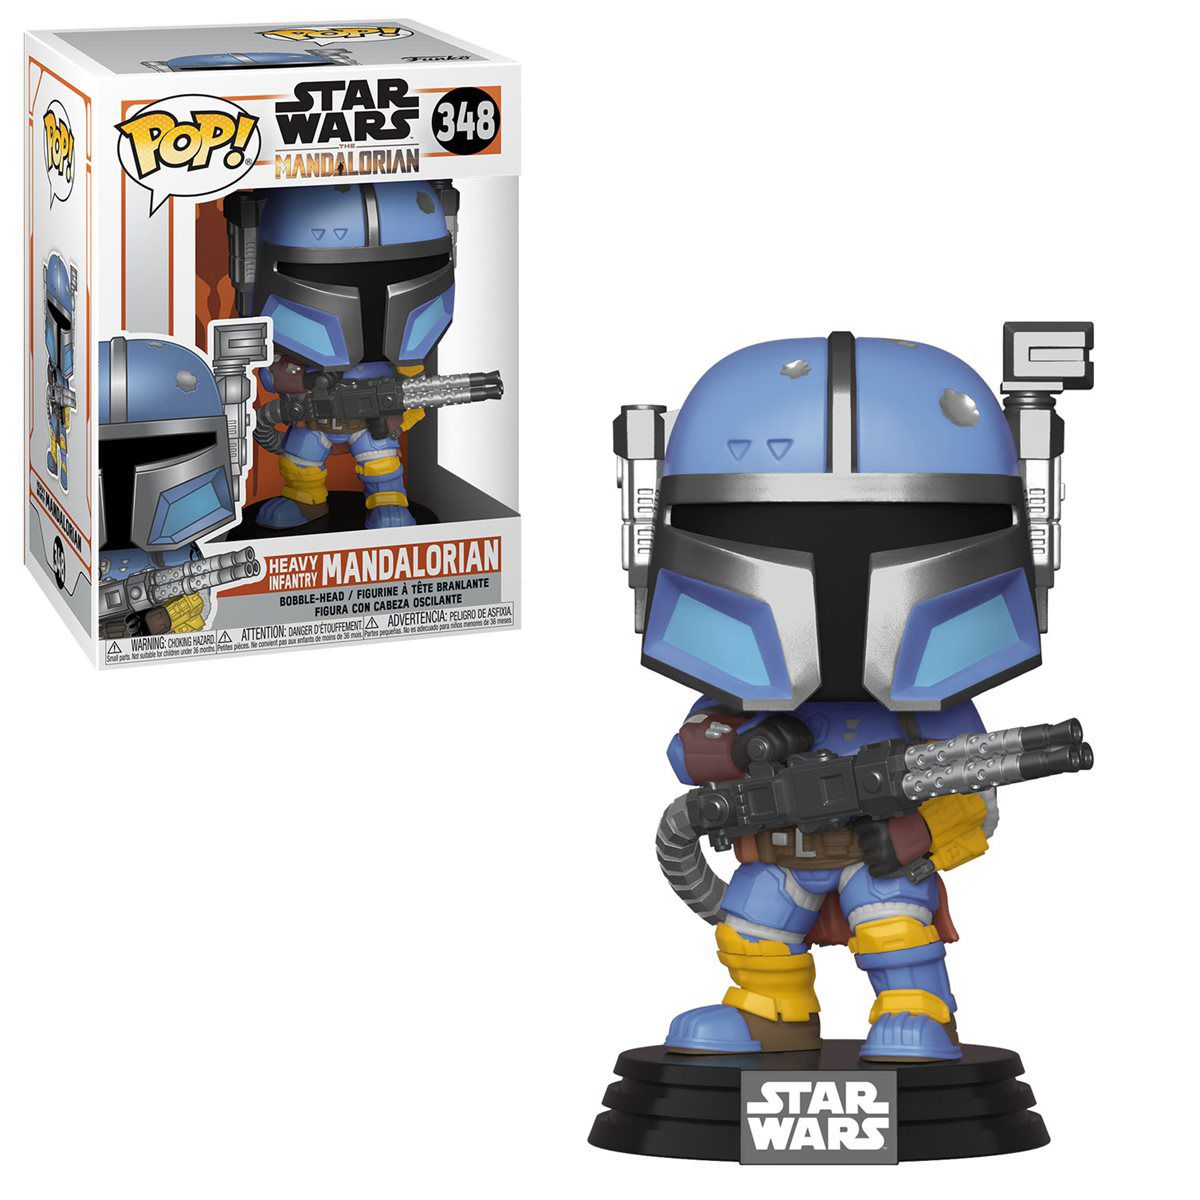 Funko Pop! Heavy Infantry Mandalorian: The Mandalorian (Star Wars) Disney+ #348 - Funko